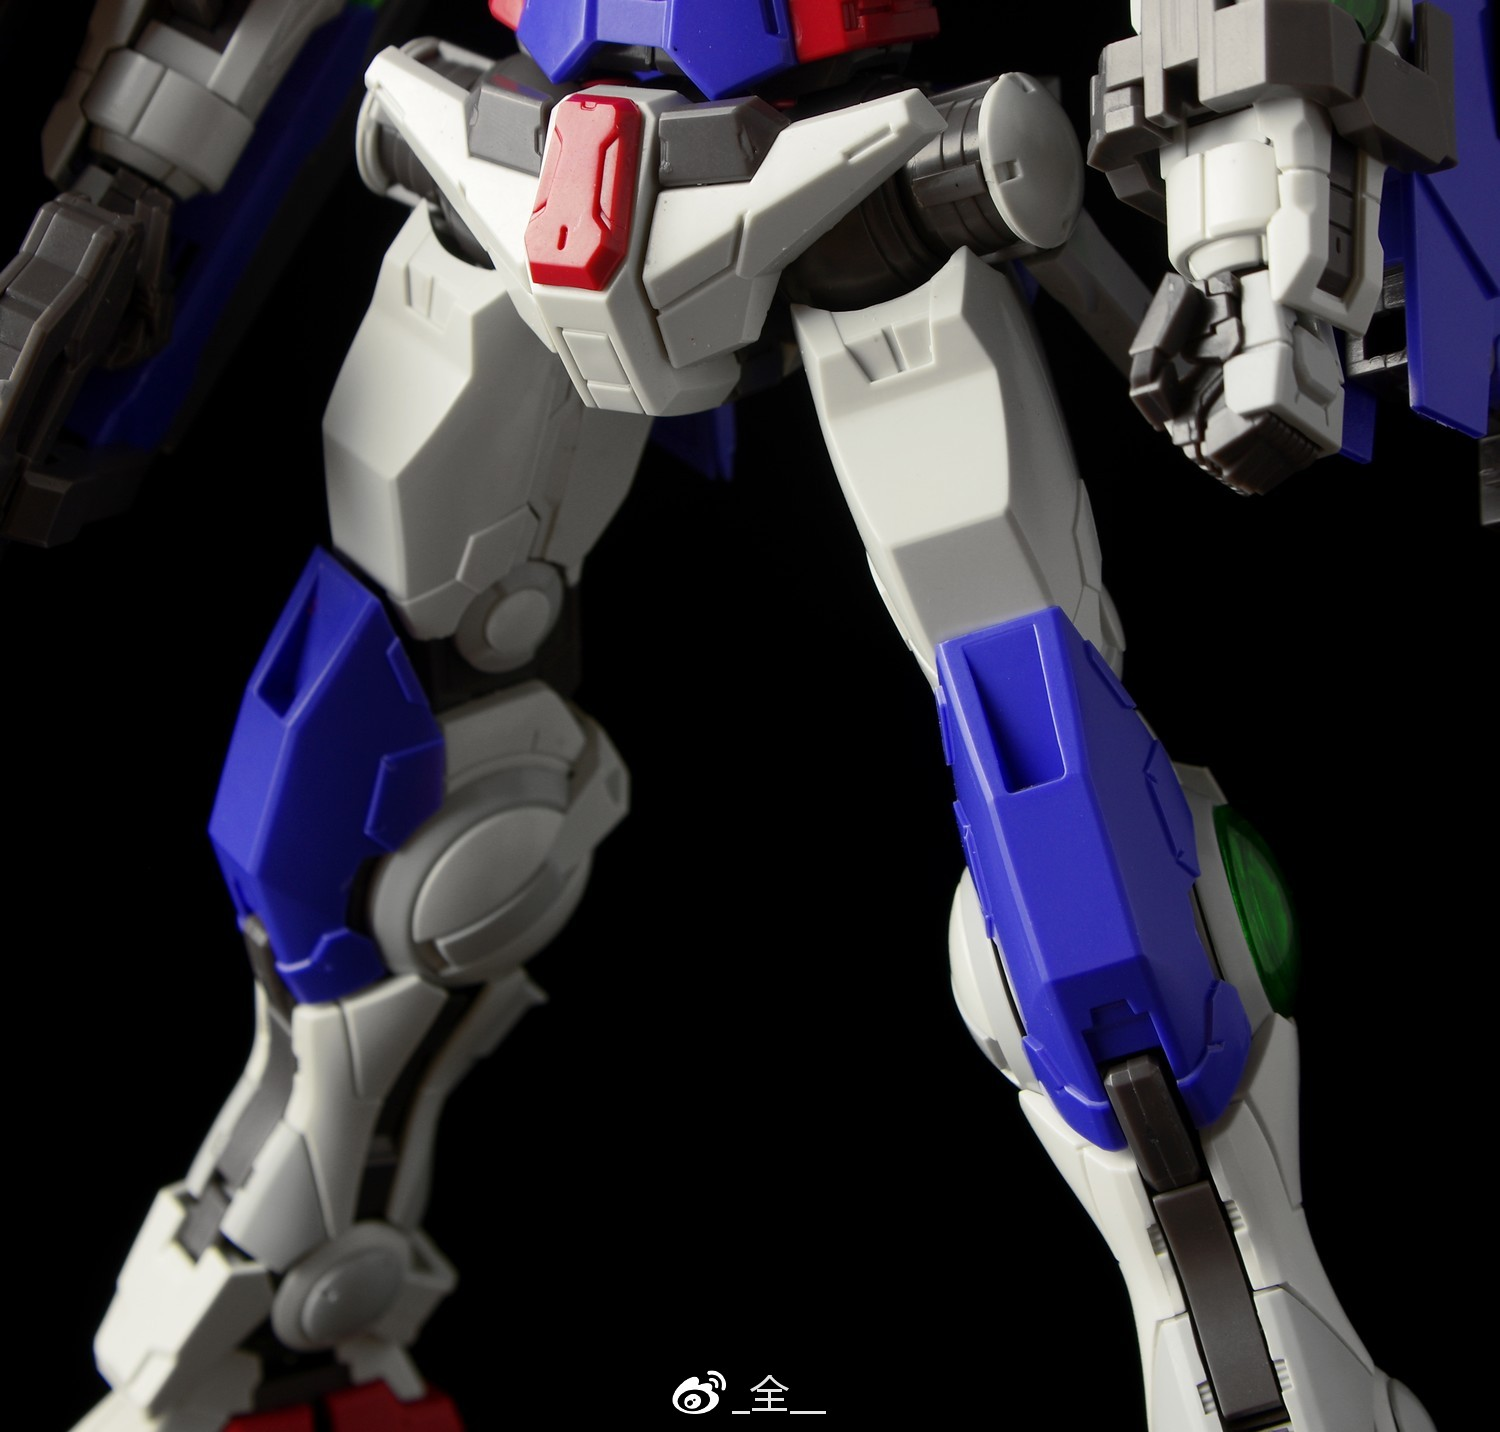 S269_mg_exia_led_hobby_star_inask_097.jpg